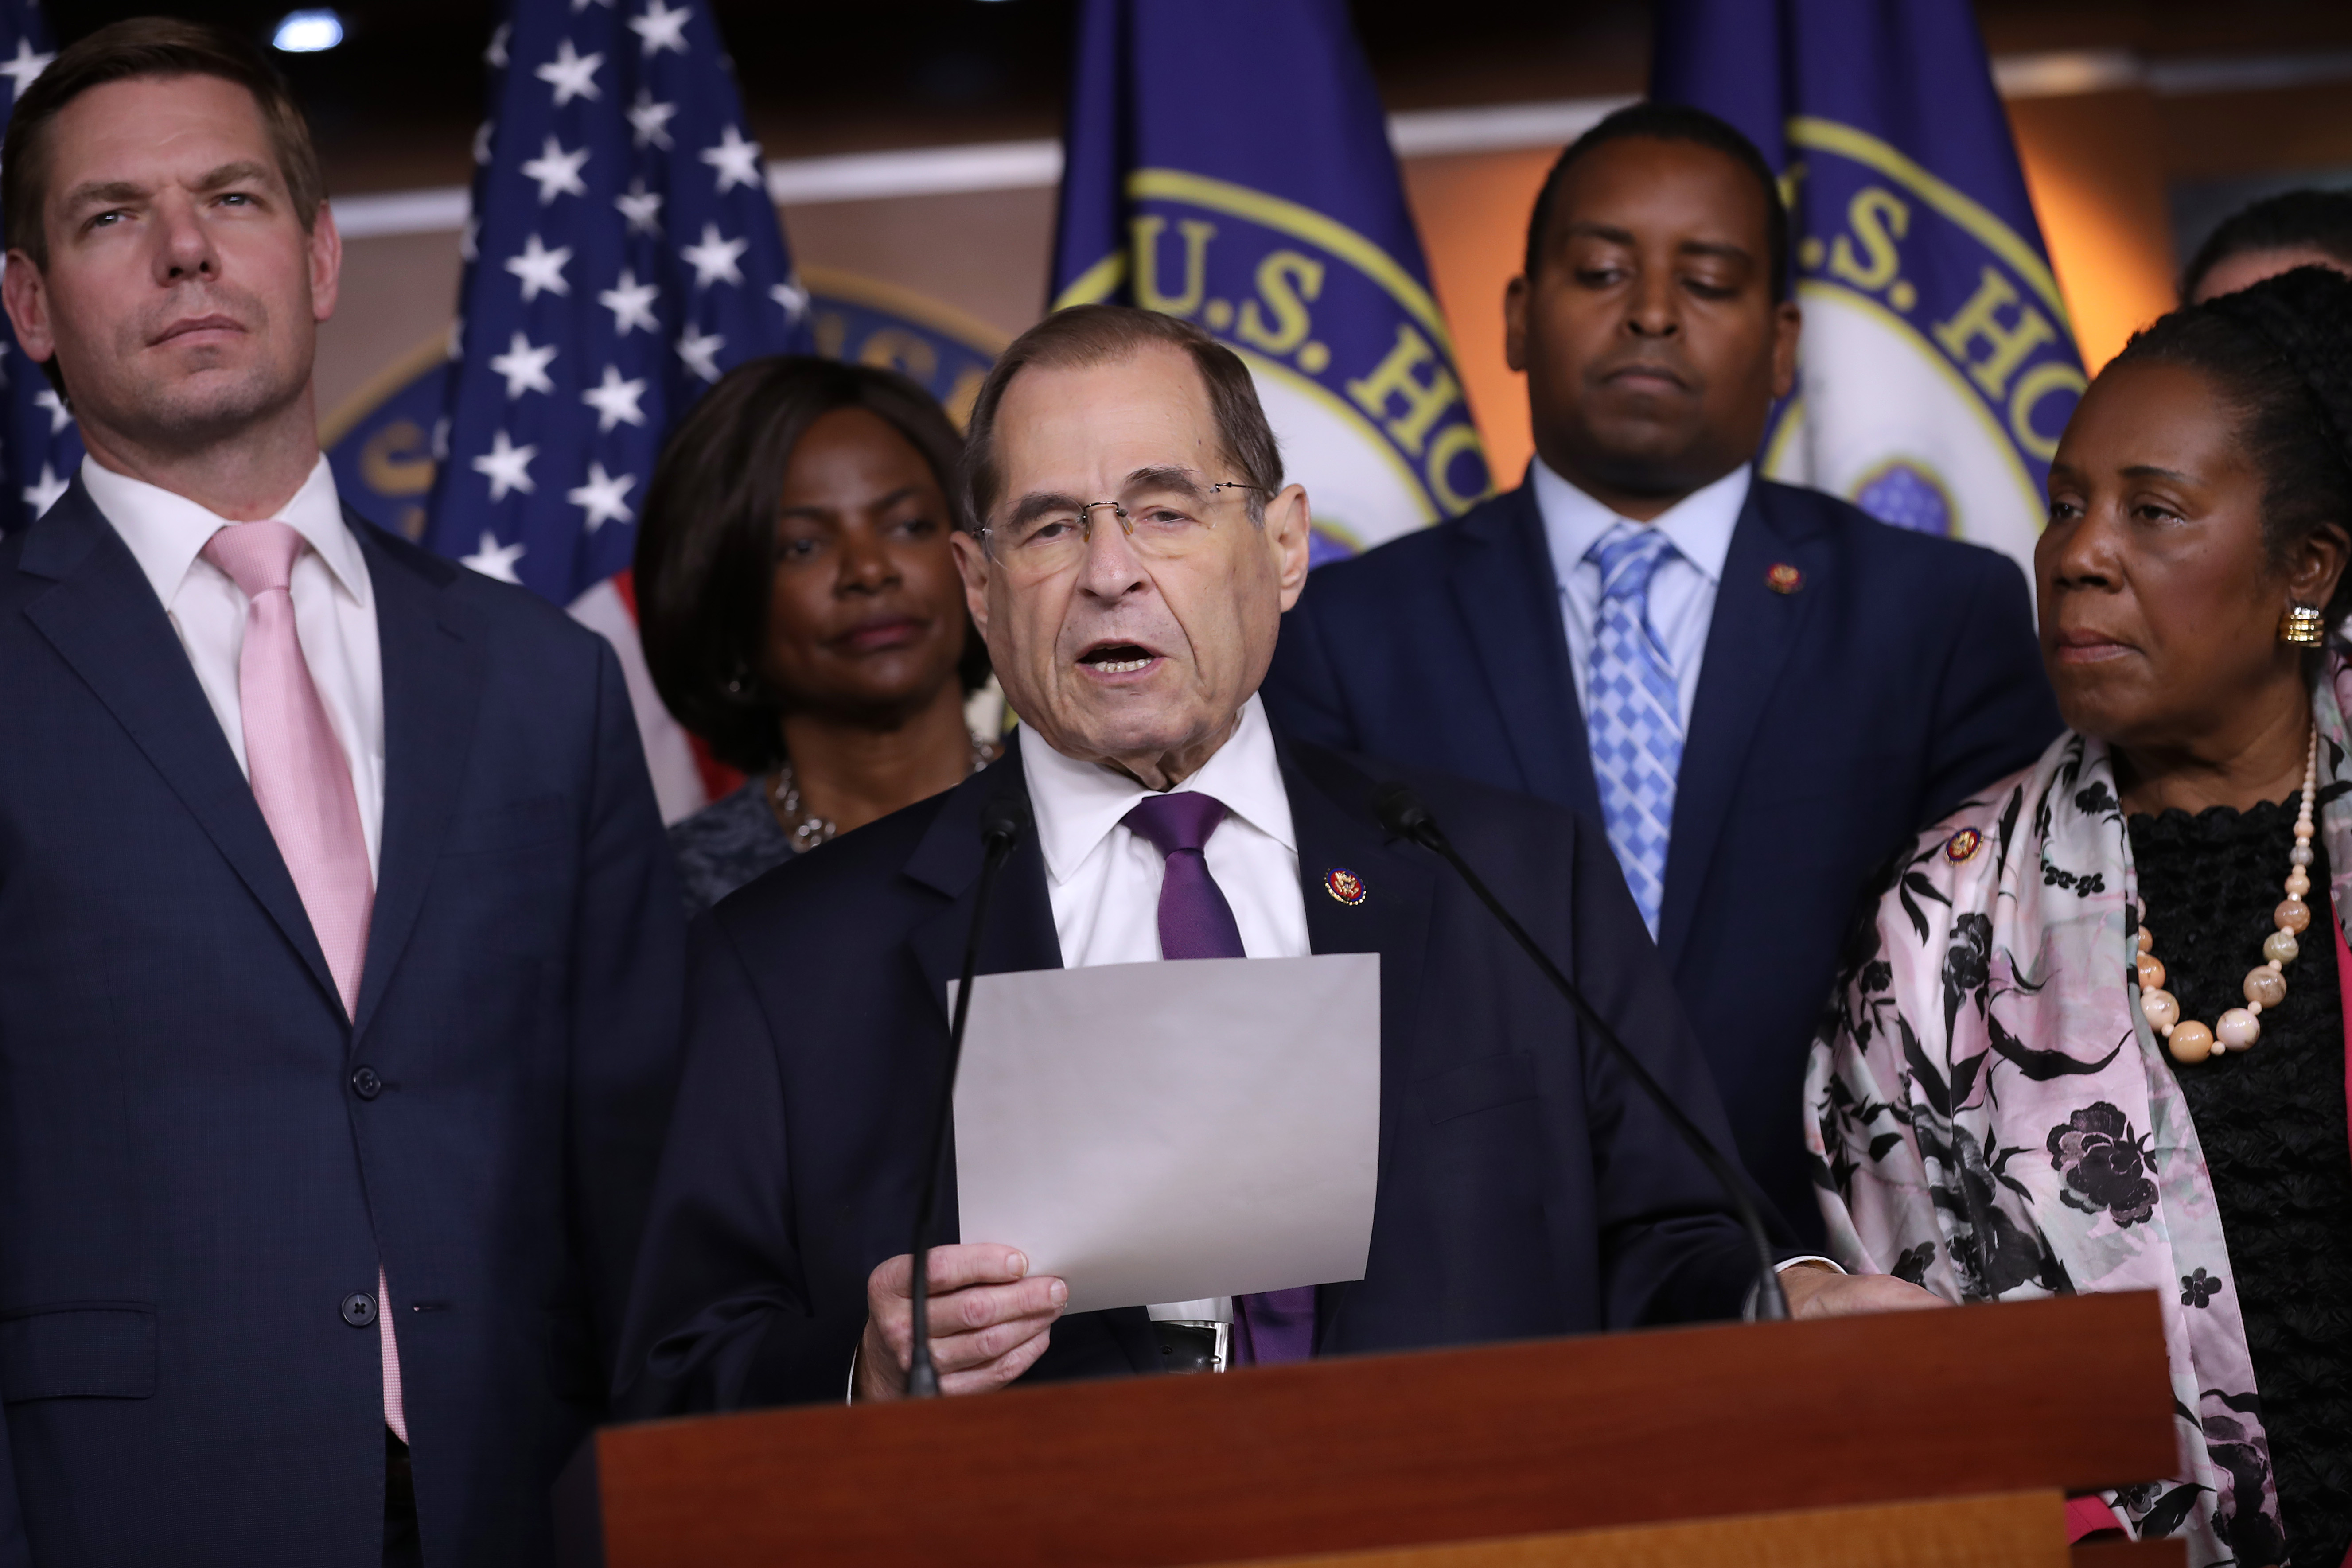 House Judiciary Committee chairman Jerrold Nadler (D-NY) holds a news conference about the testimony of former special counsel Robert Mueller on July 26, 2019. (Chip Somodevilla/Getty Images)